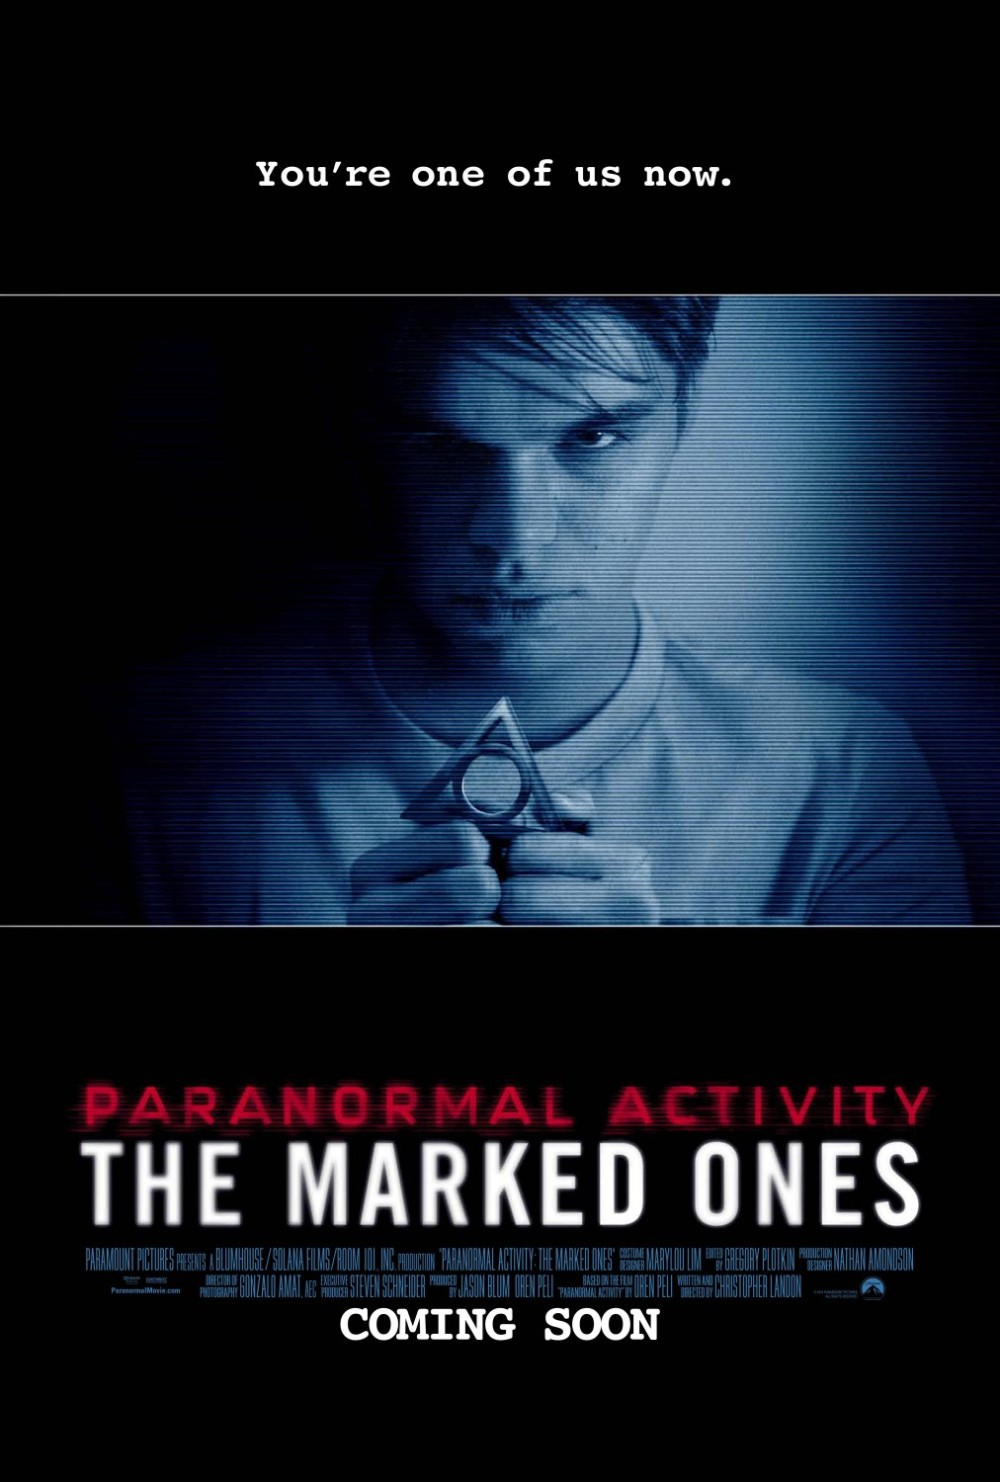 Paranormal Activity The Marked Ones poster